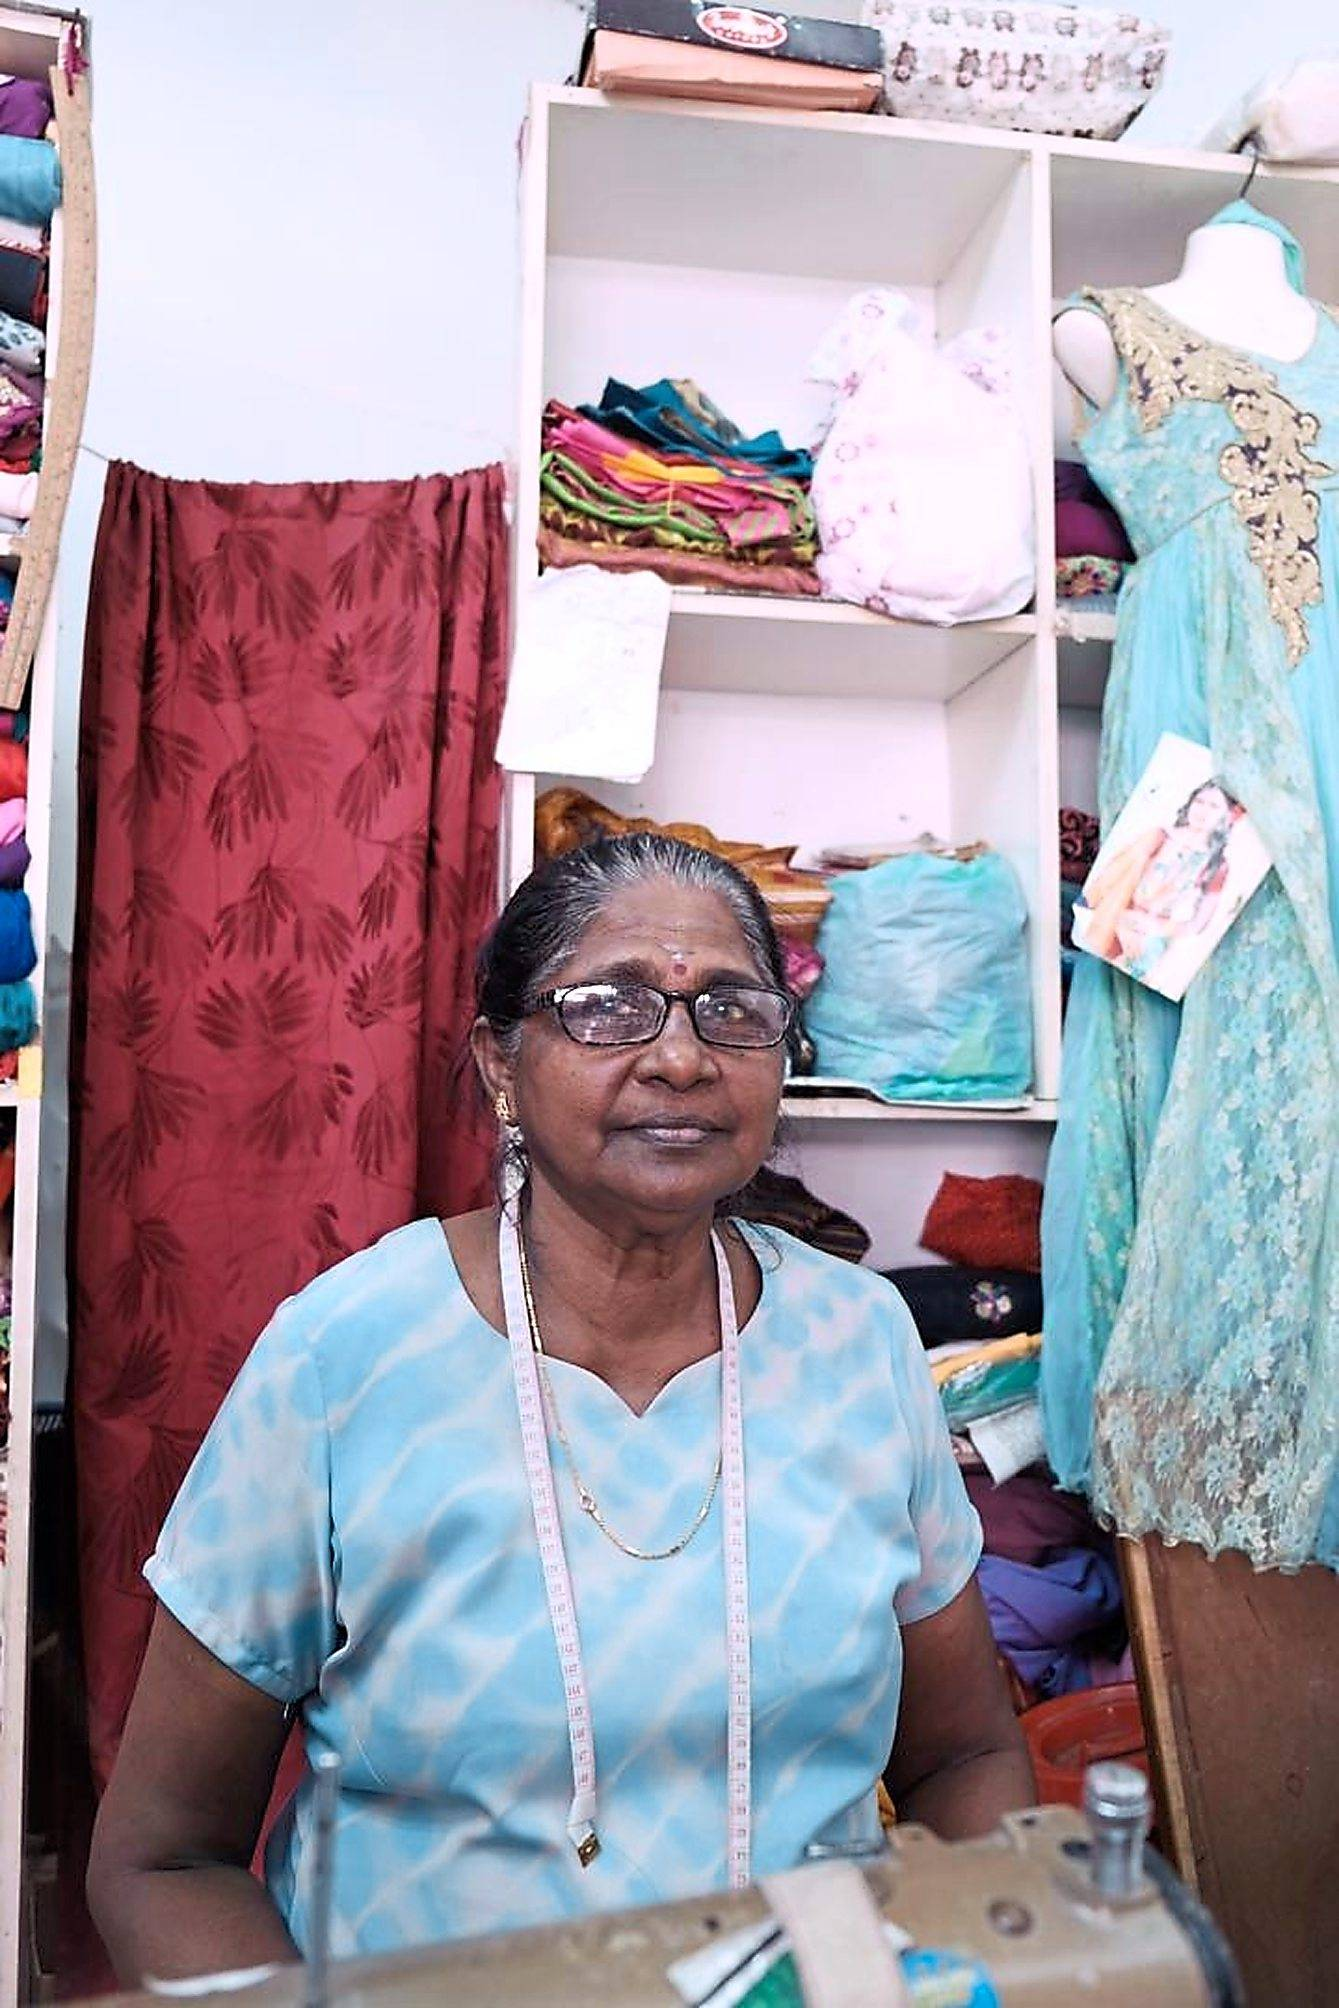 Anjalai: Allocate funds for the welfare of Johoreans, especially the elderly.